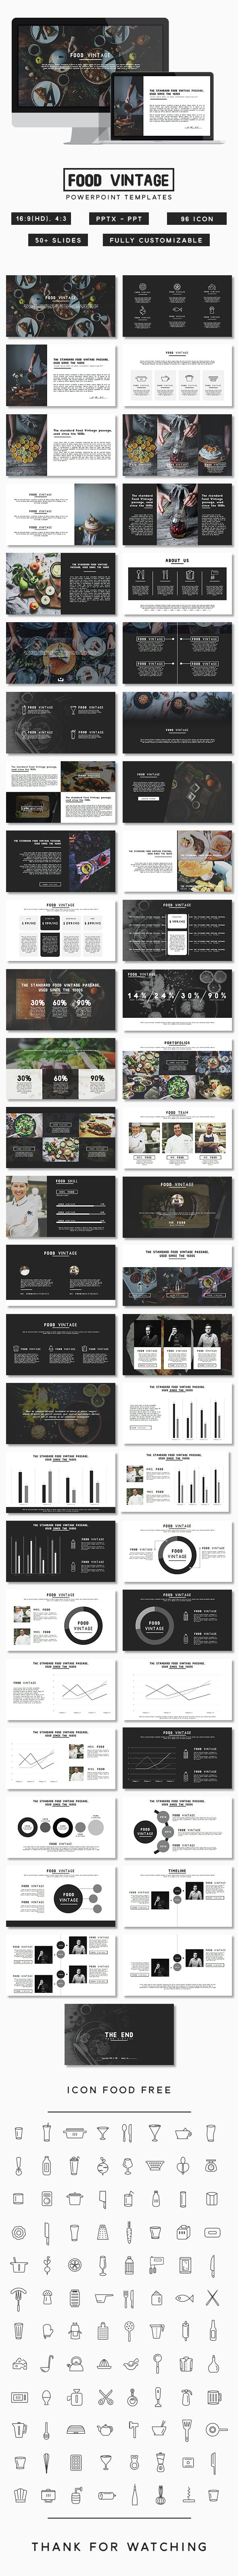 Food Vintage PowerPoint Presentation Template #slides Download here: http://graphicriver.net/item/food-vintage-presentation/14582737?ref=ksioks